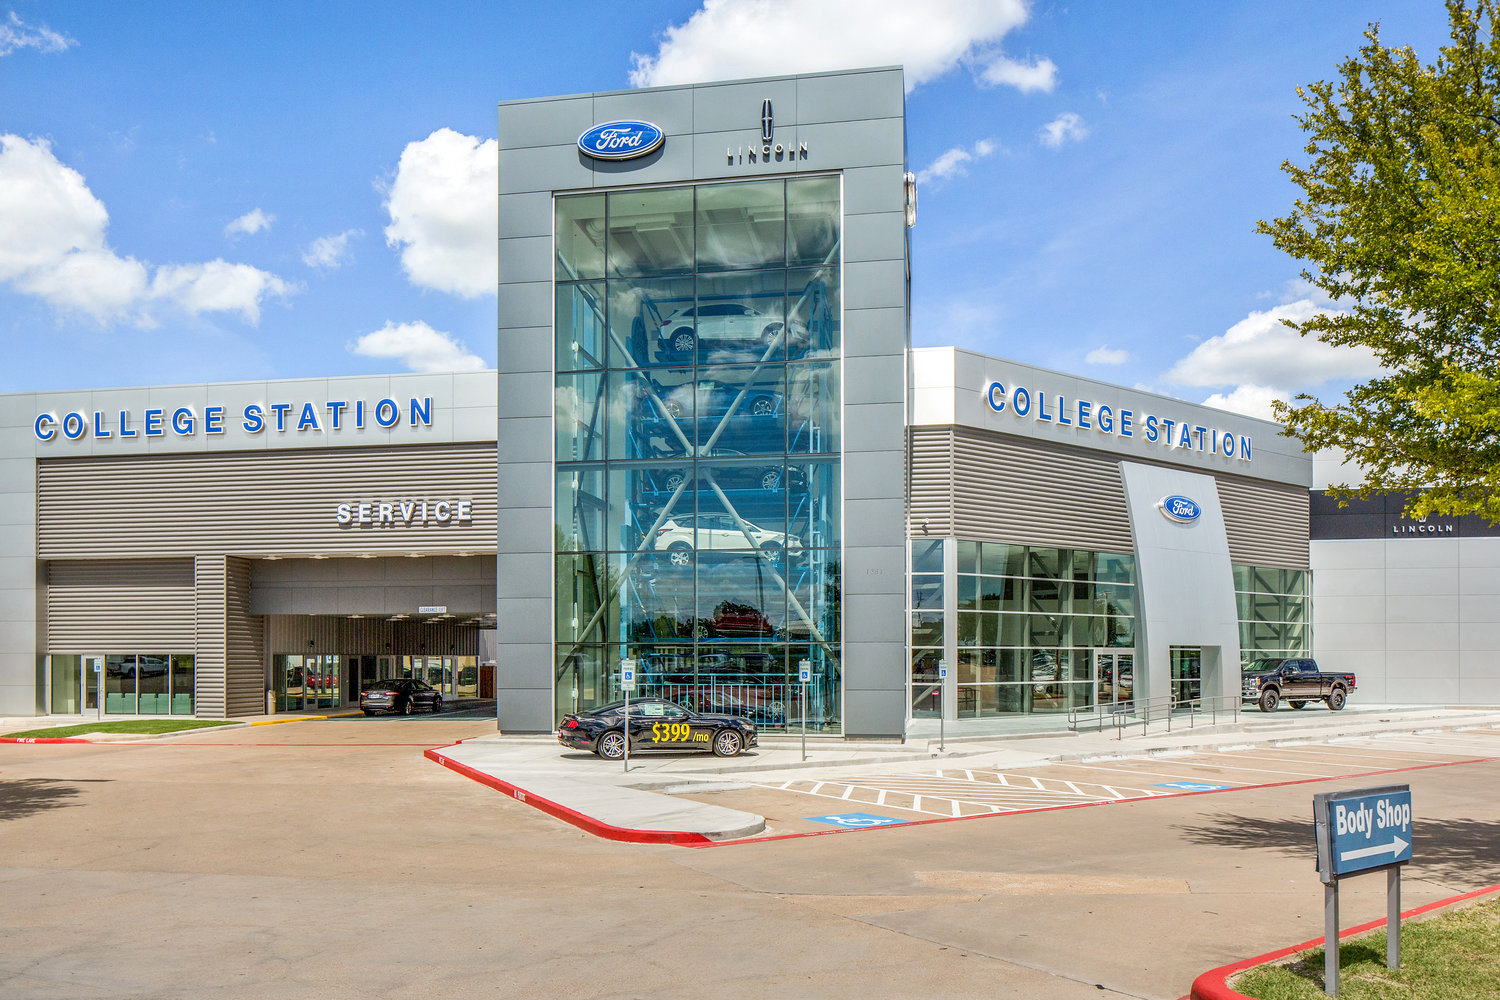 College Station Ford